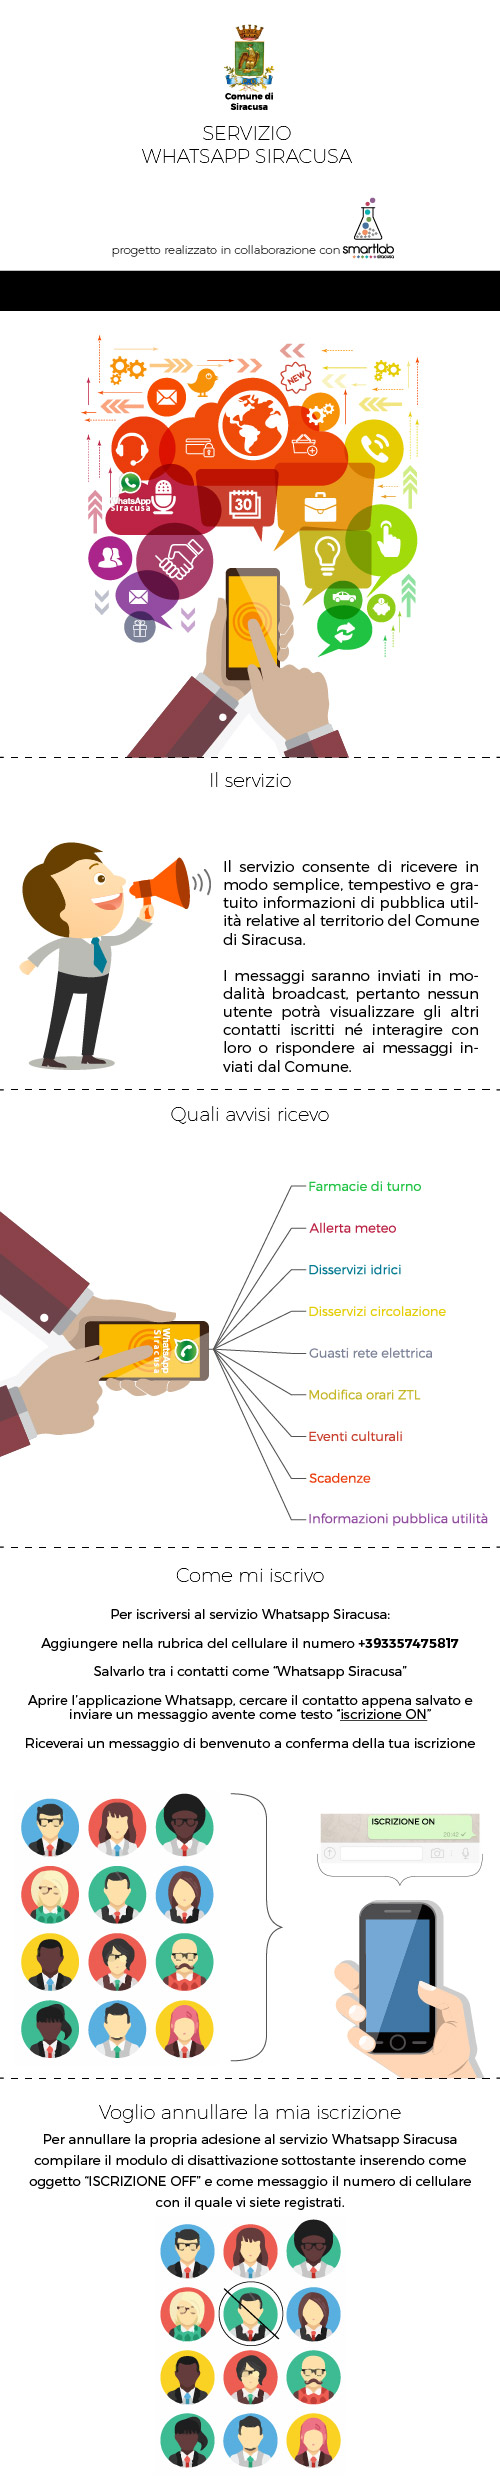 whatsapp sr per portale modificato1